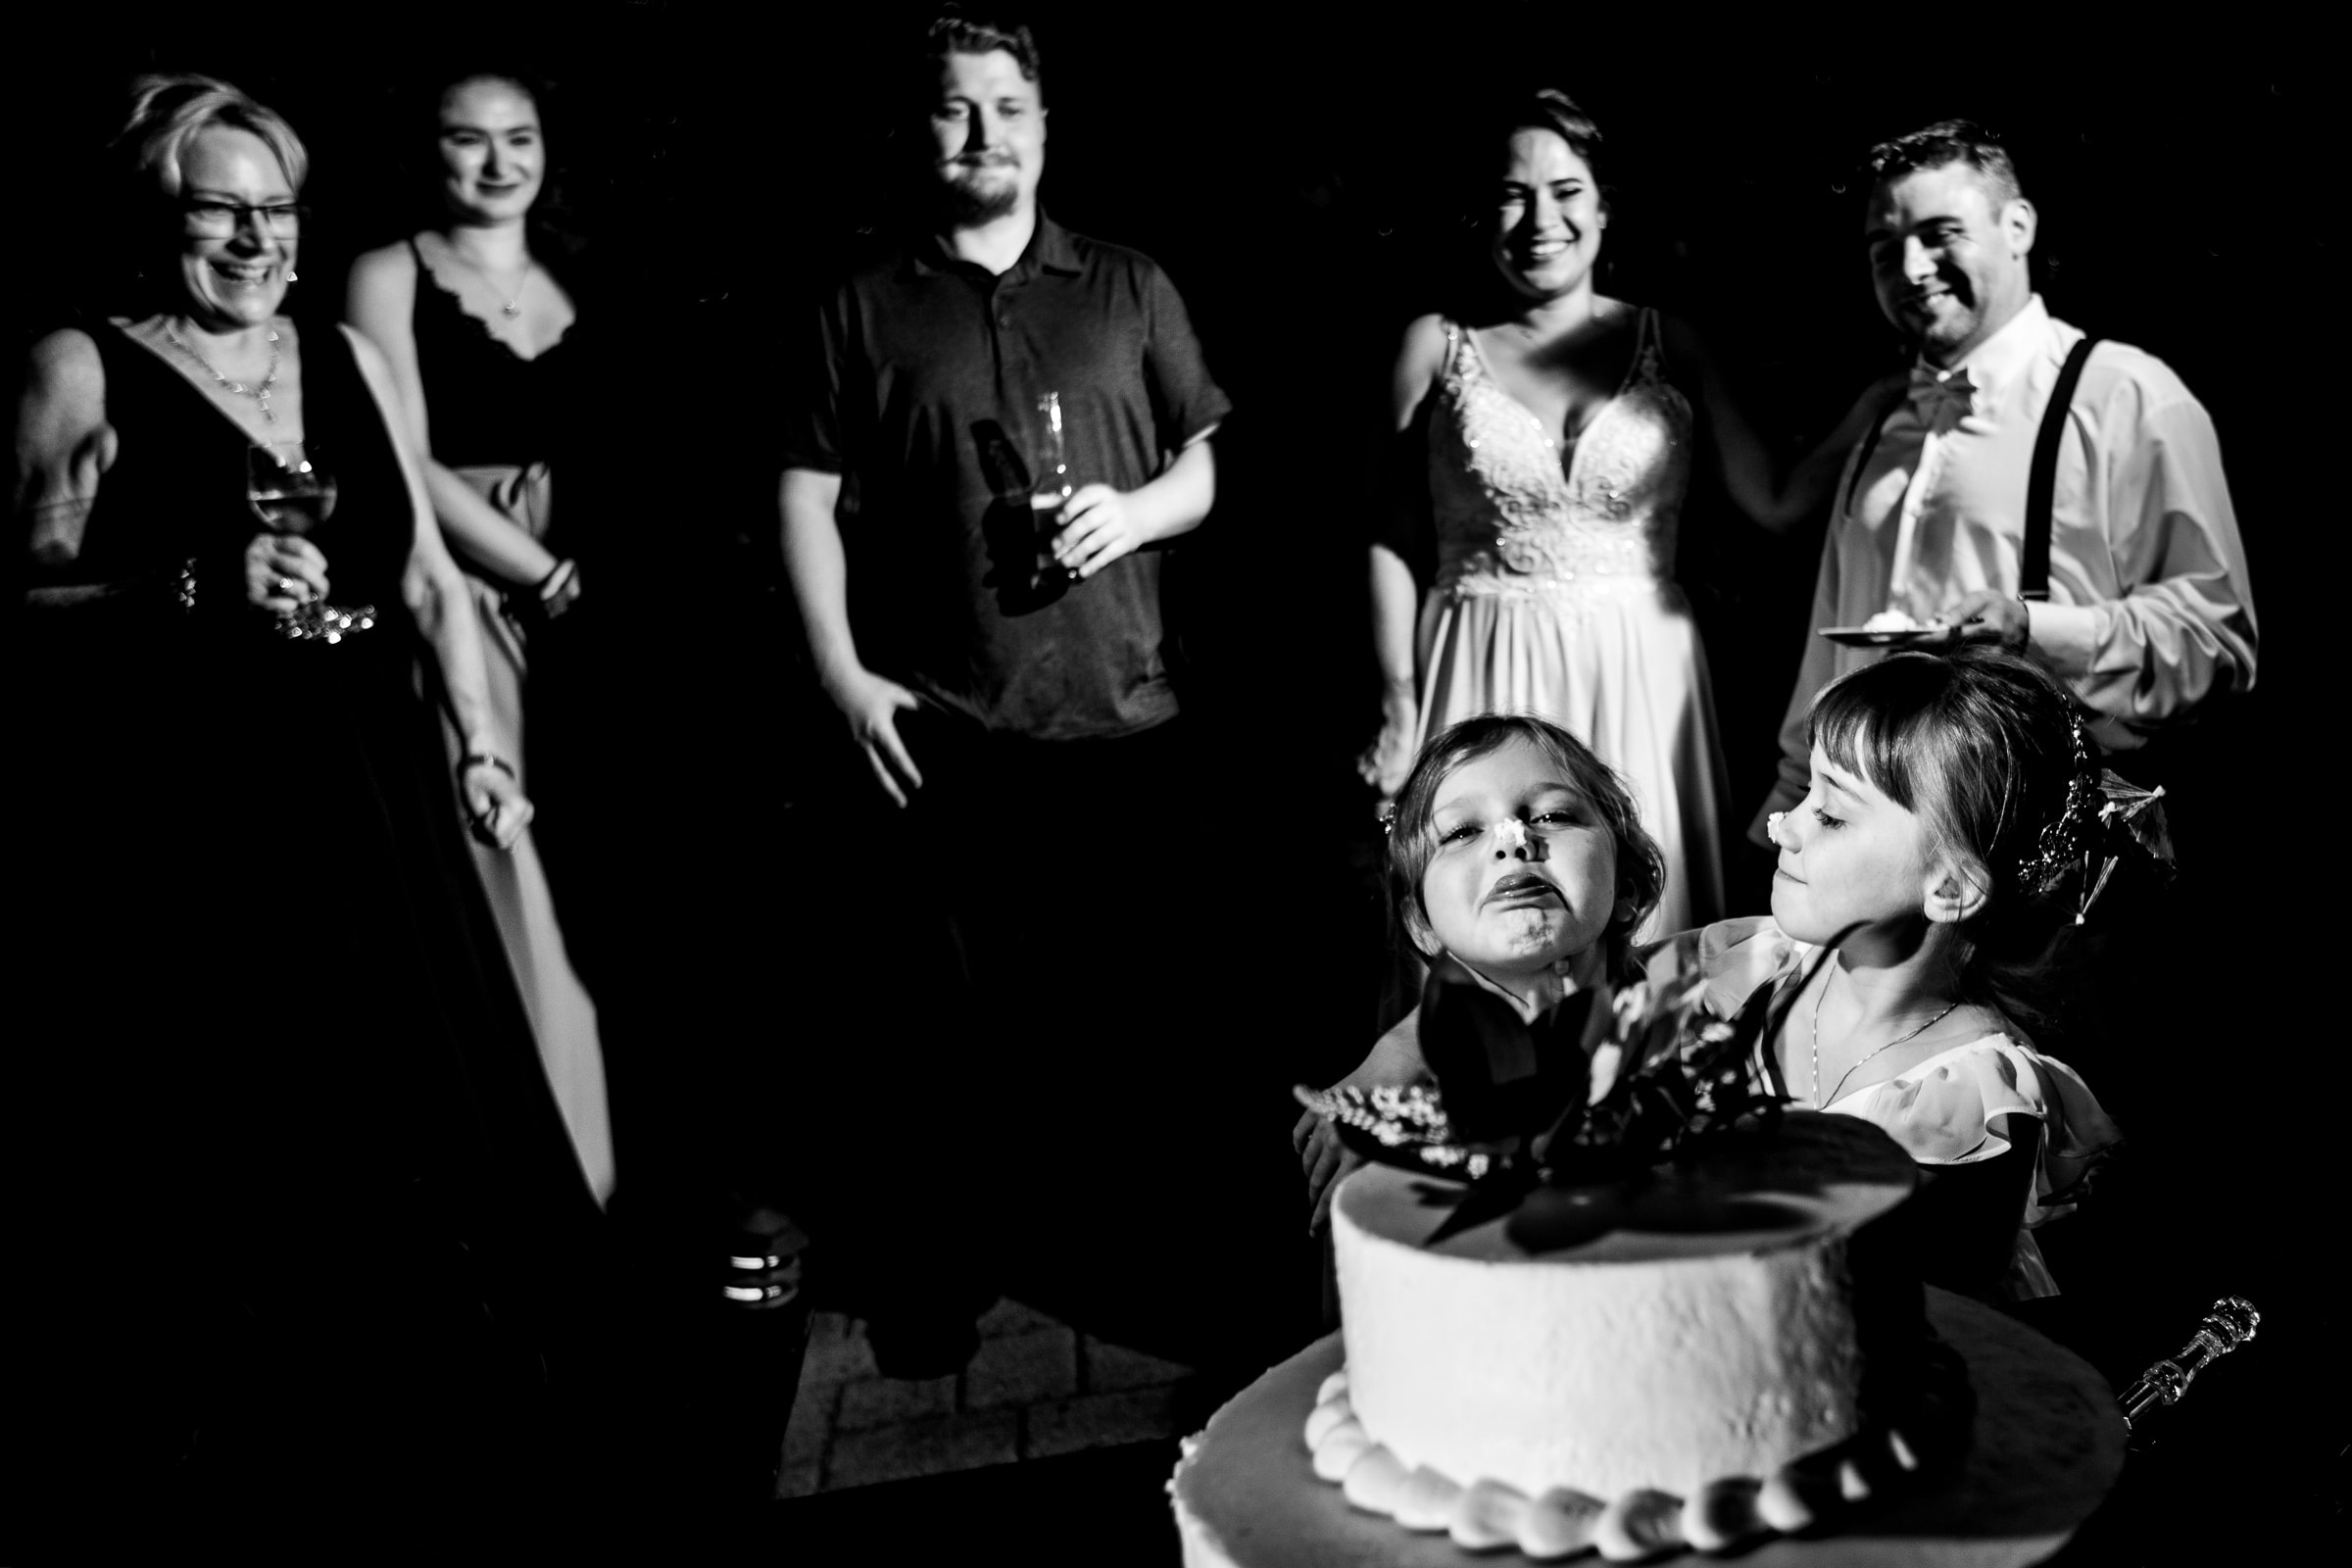 Kids with cake on their faces during a Portland Wedding elopement